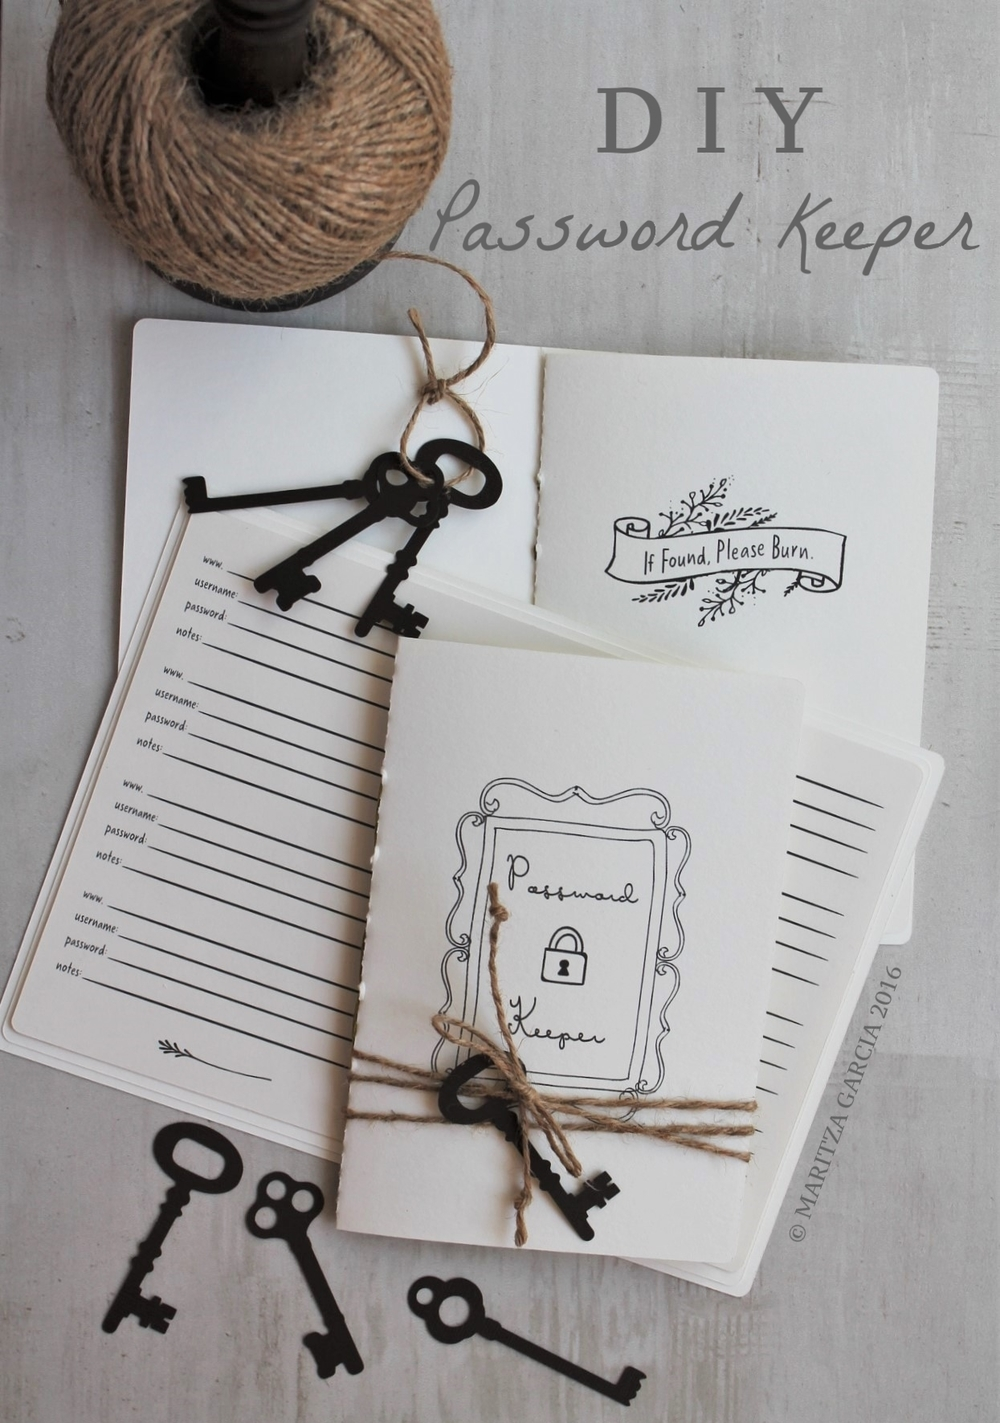 DIY Password Keeper